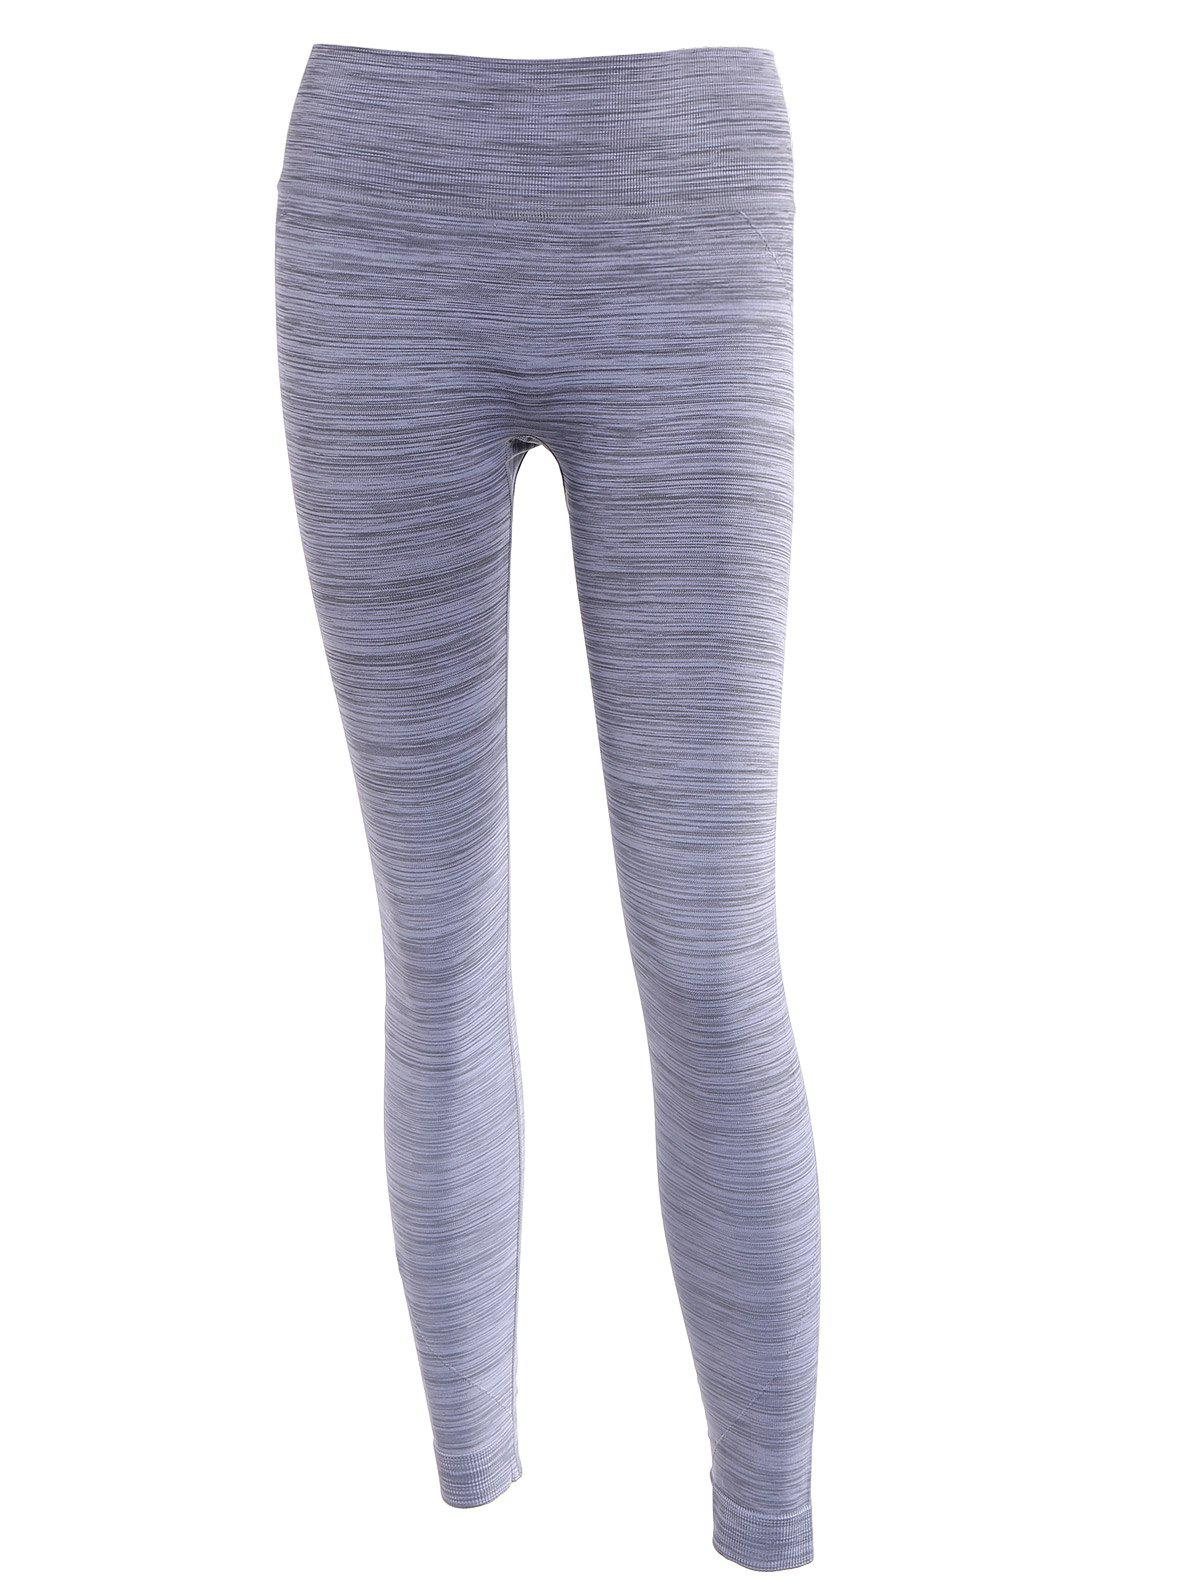 Casual Women's Tie-Dyed Stretch Slimming Yoga Pants - GRAY ONE SIZE(FIT SIZE XS TO M)